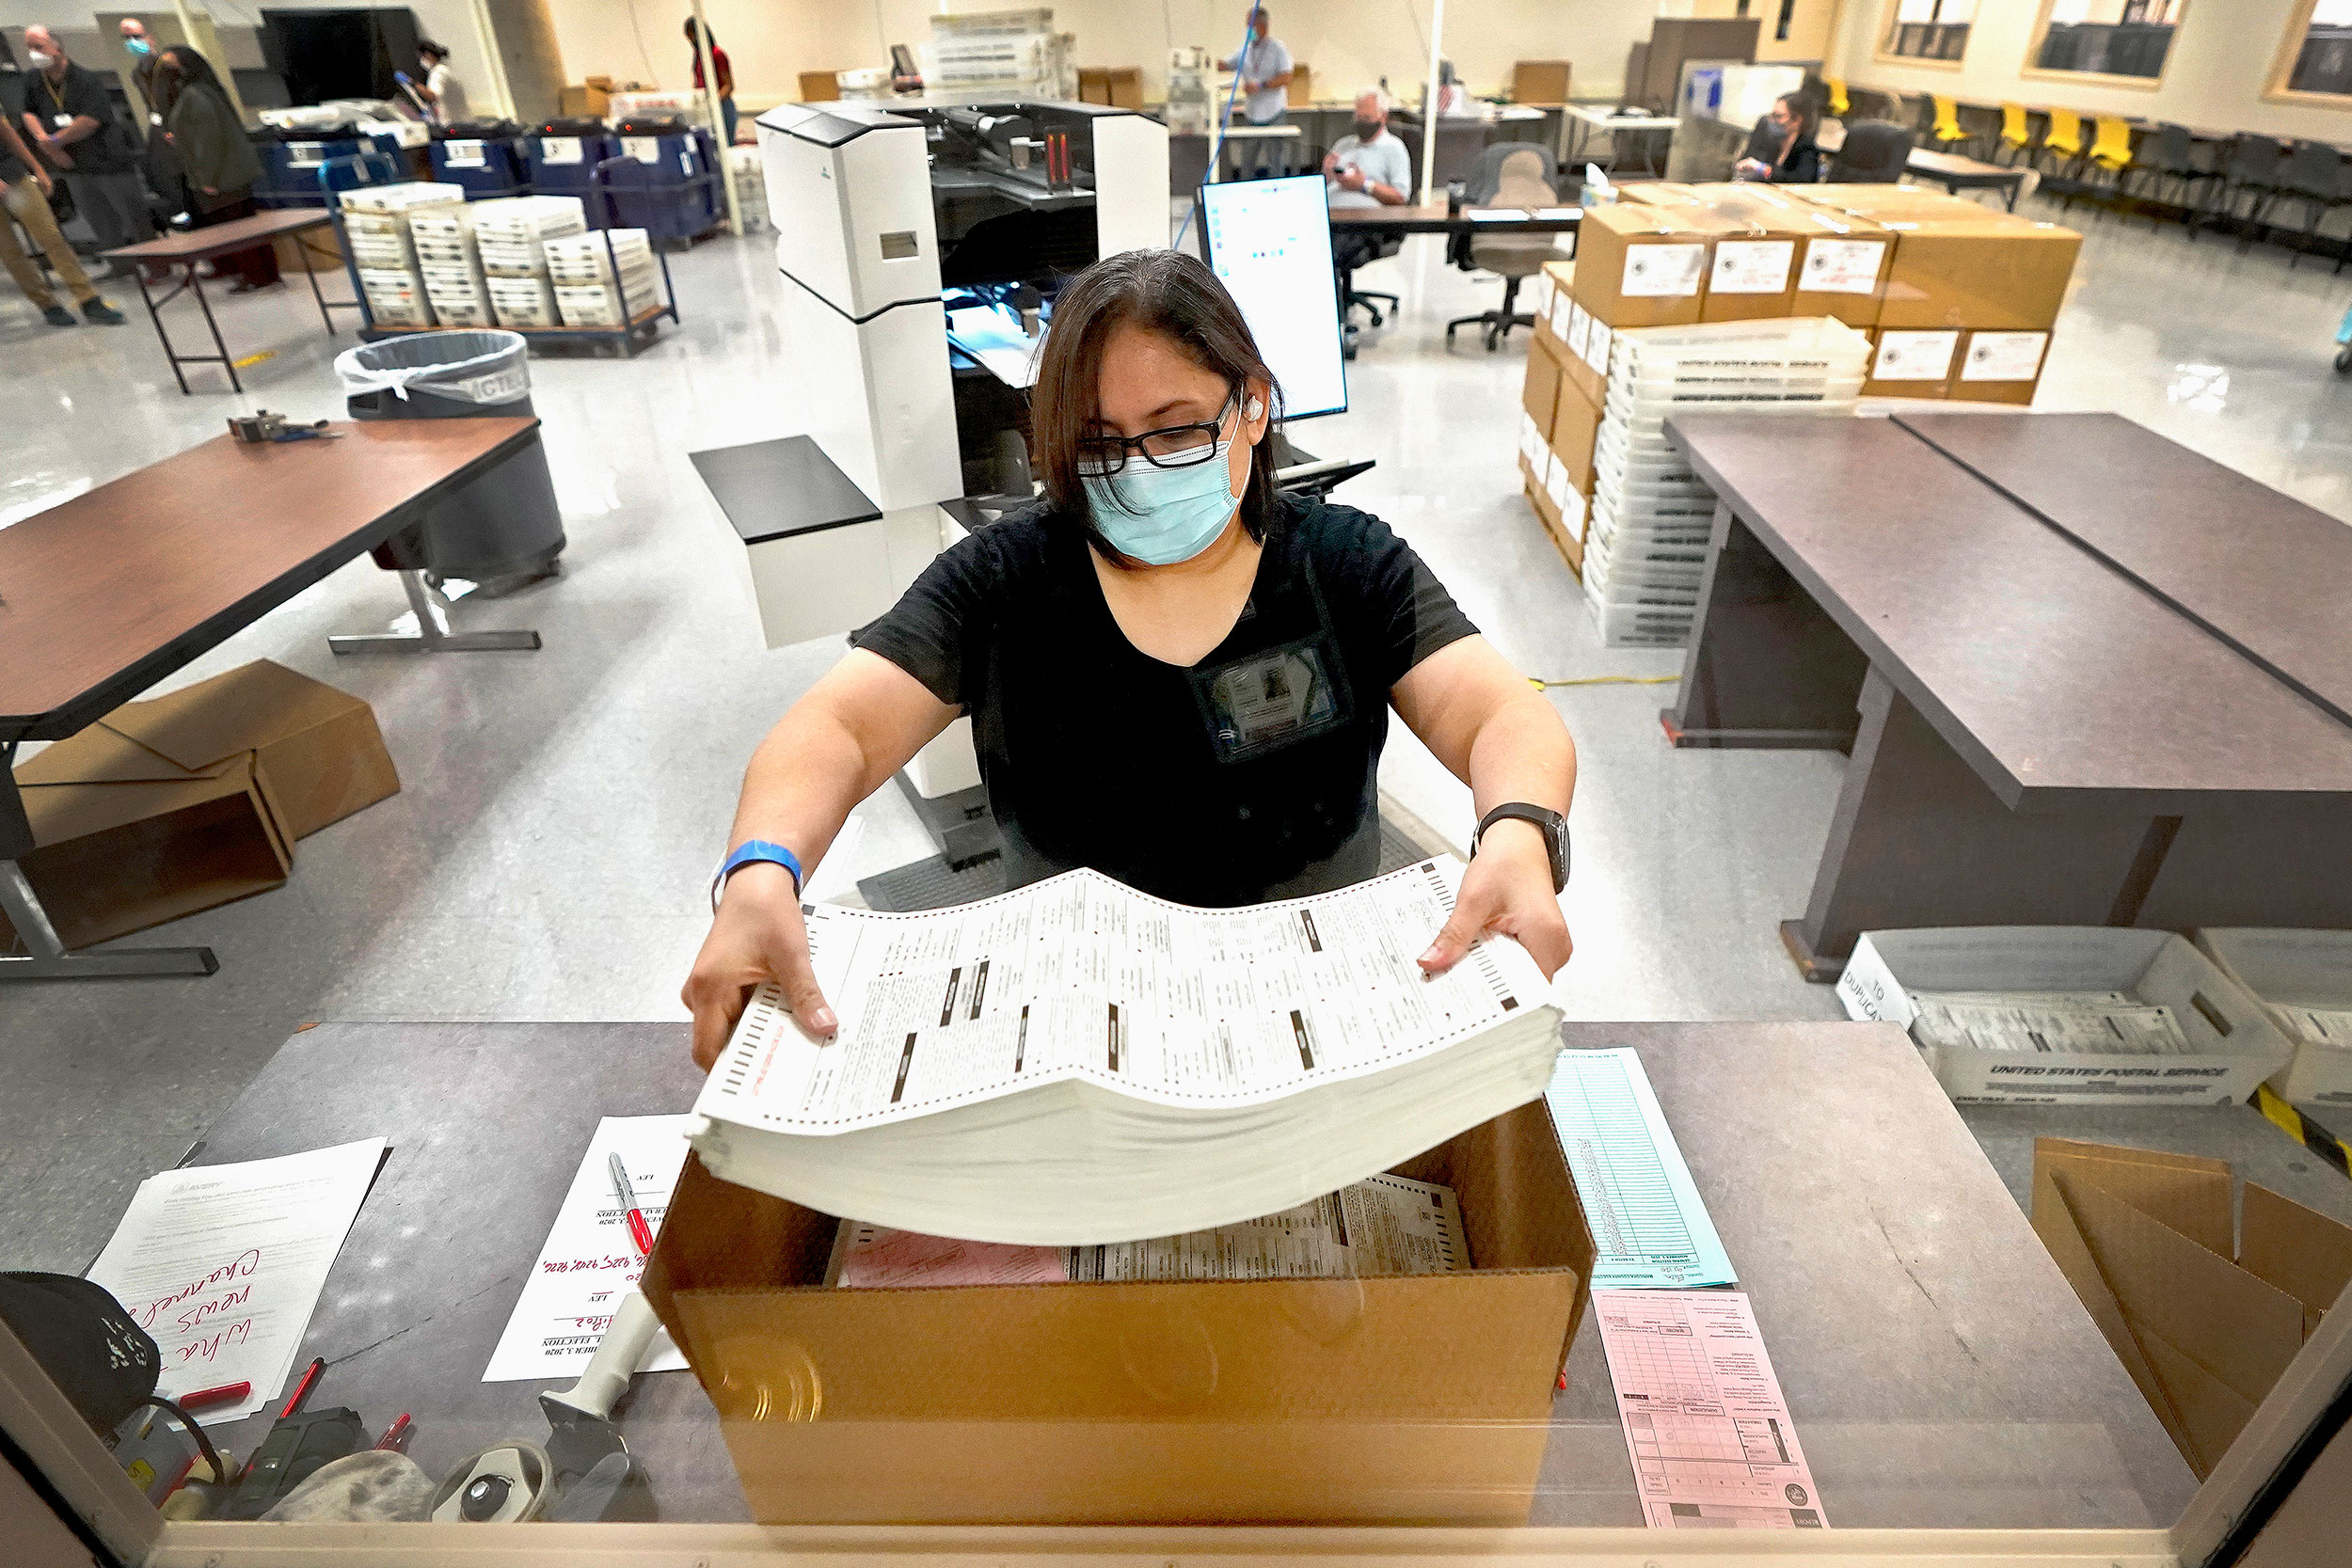 An election official counts ballots inside the Maricopa County Recorder's Office on November 6 in Phoenix, Arizona.